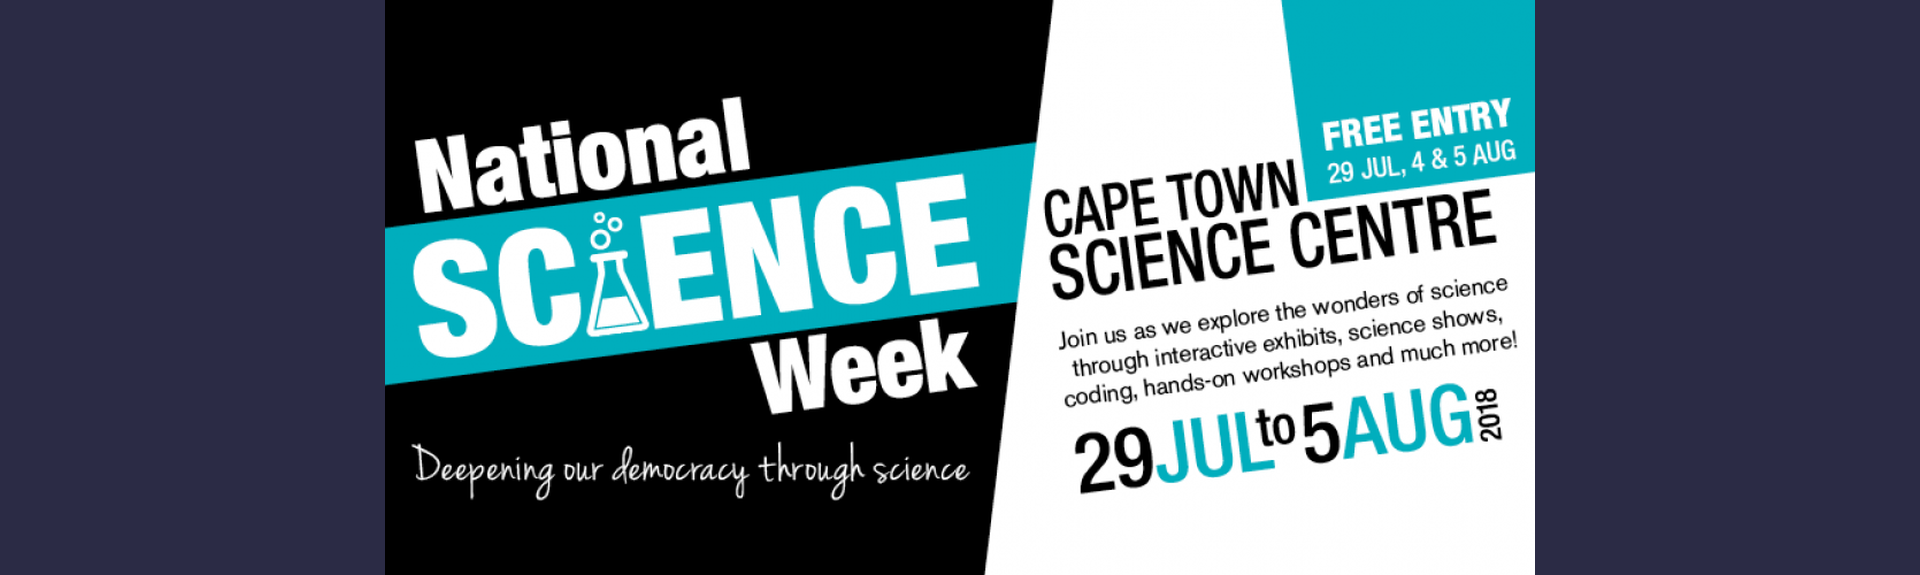 National Science Week | Cape Town Science Centre | Special Event